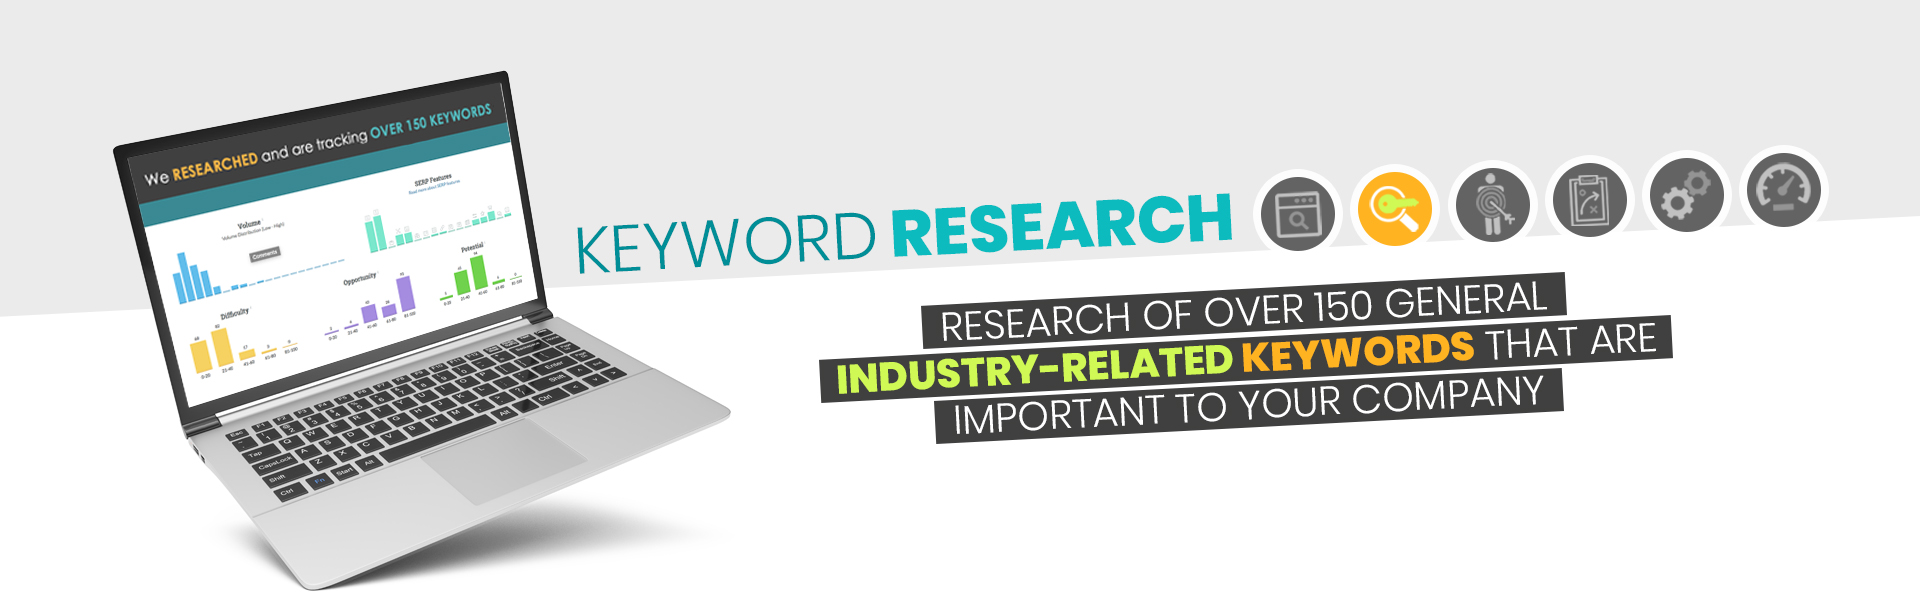 Keywords - Industry-Related